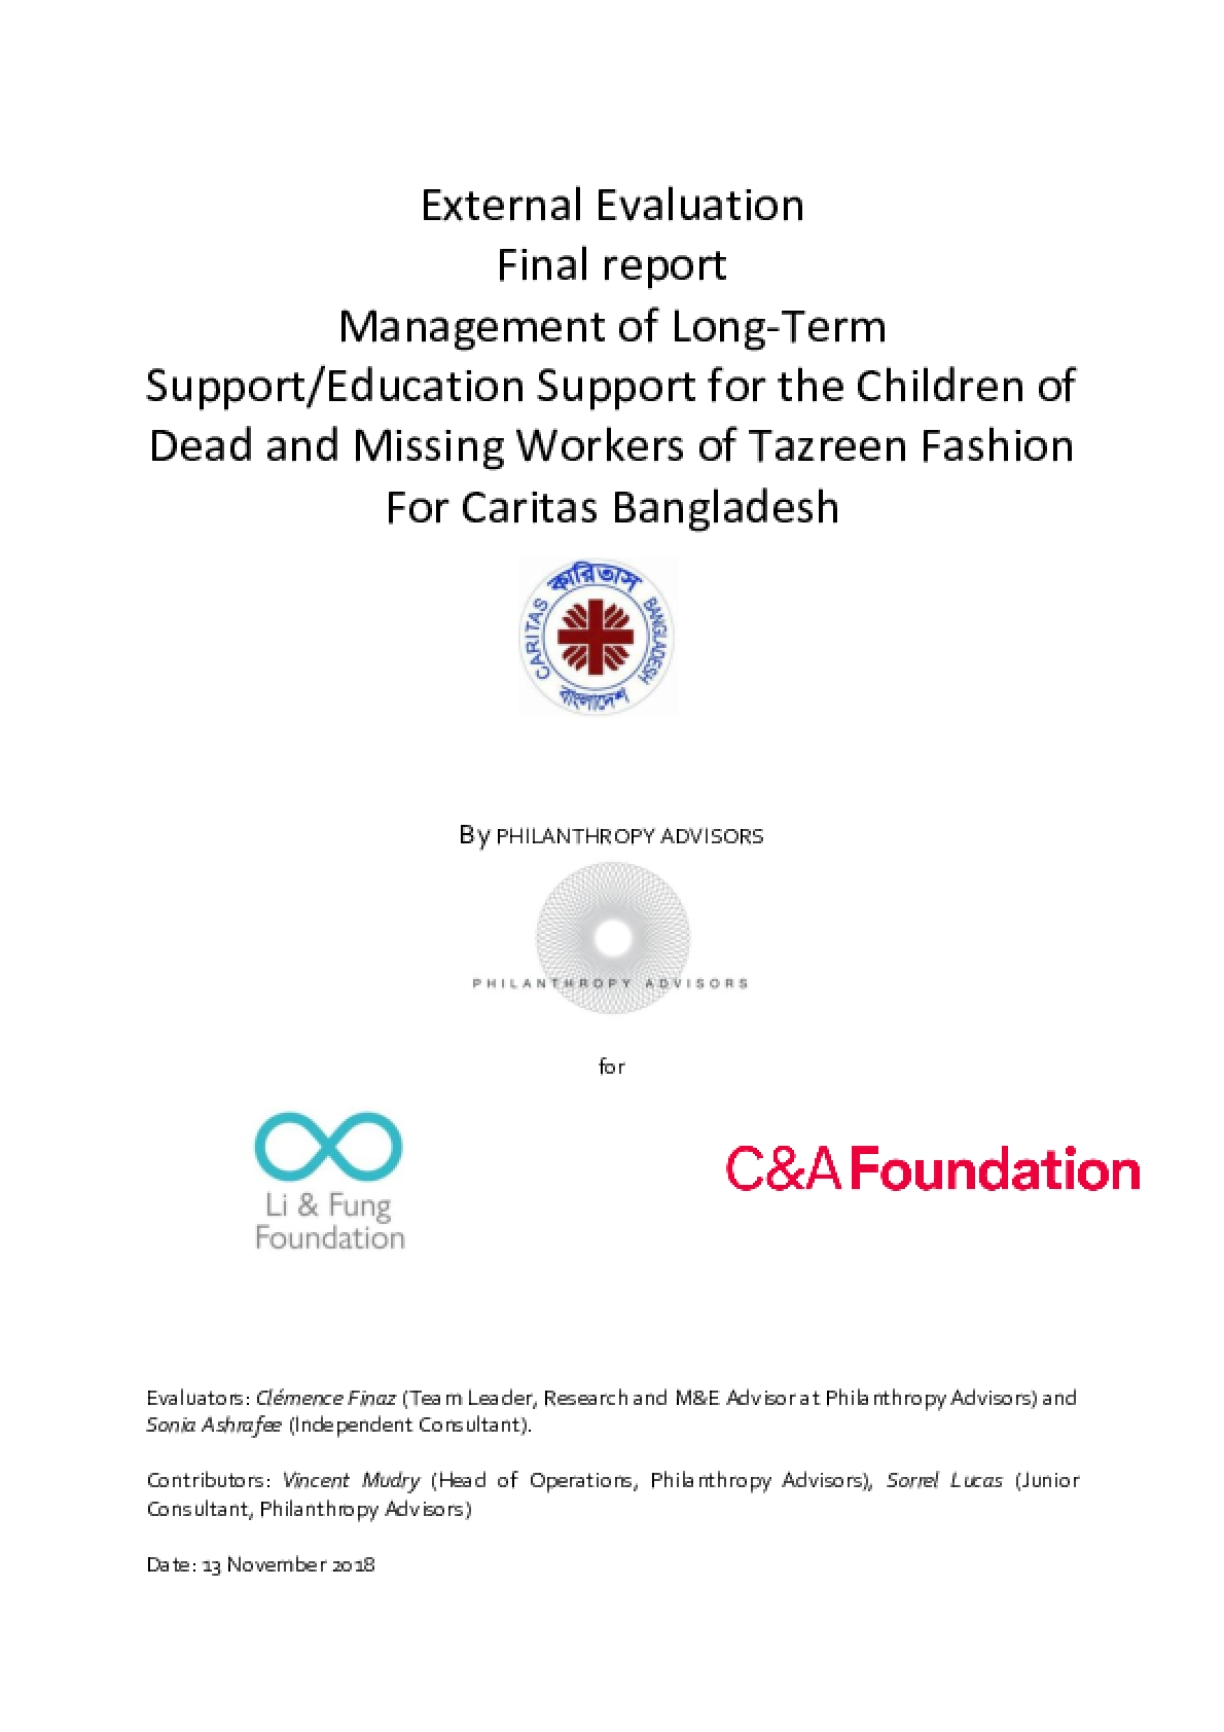 External Evaluation Final Report: Management of Long-Term Support/Education Support for the Children of Dead and Missing Workers of Tazreen Fashion For Caritas Bangladesh